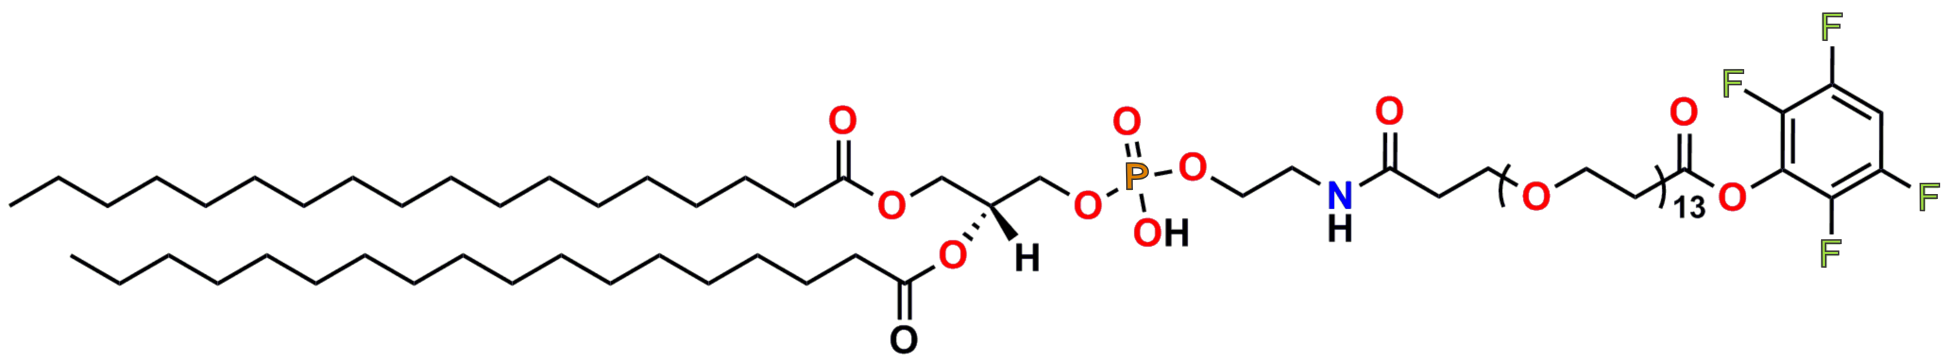 This image shows the chemical structure of PN11029, TFP-dPEG®13-DSPE. Captions above the different sections show the locations of the fatty acid (stearic acid) tail, the glyceryl phosphatidylethanolamine group, the dPEG®13 spacer, and the amine-reactive tetrafluorophenyl ester. The oxygen, phosphorous, nitrogen, and fluorine atoms are color coded according to the CPK standards.